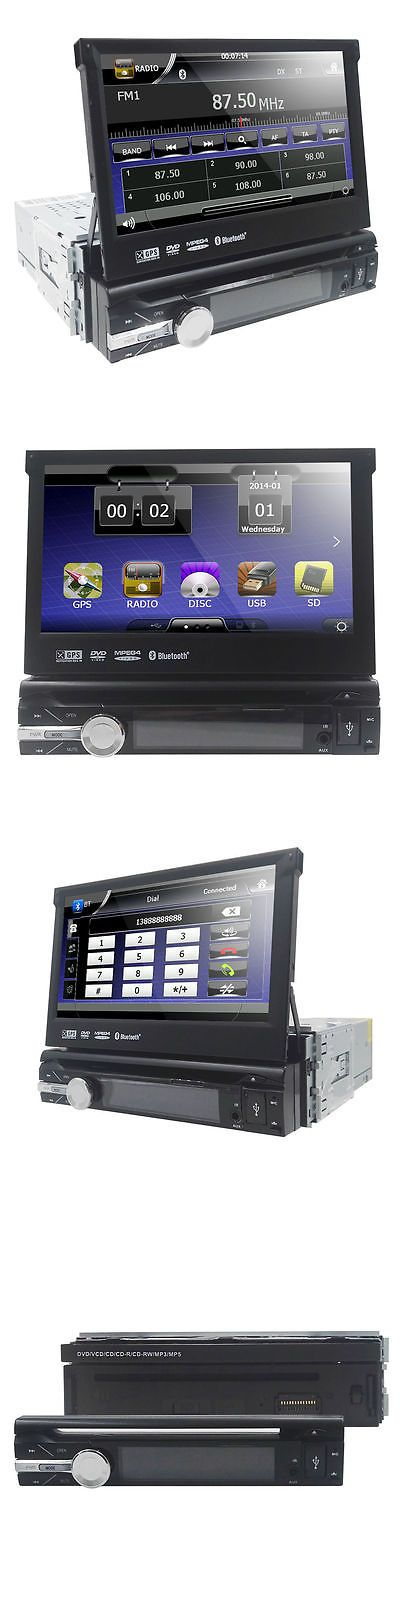 Vehicle Electronics And GPS: Single 1 Din 7 Hd Flip Up Gps Navigation Car Stereo Cd Dvd Mp3 Player Map Radio -> BUY IT NOW ONLY: $149.0 on eBay!